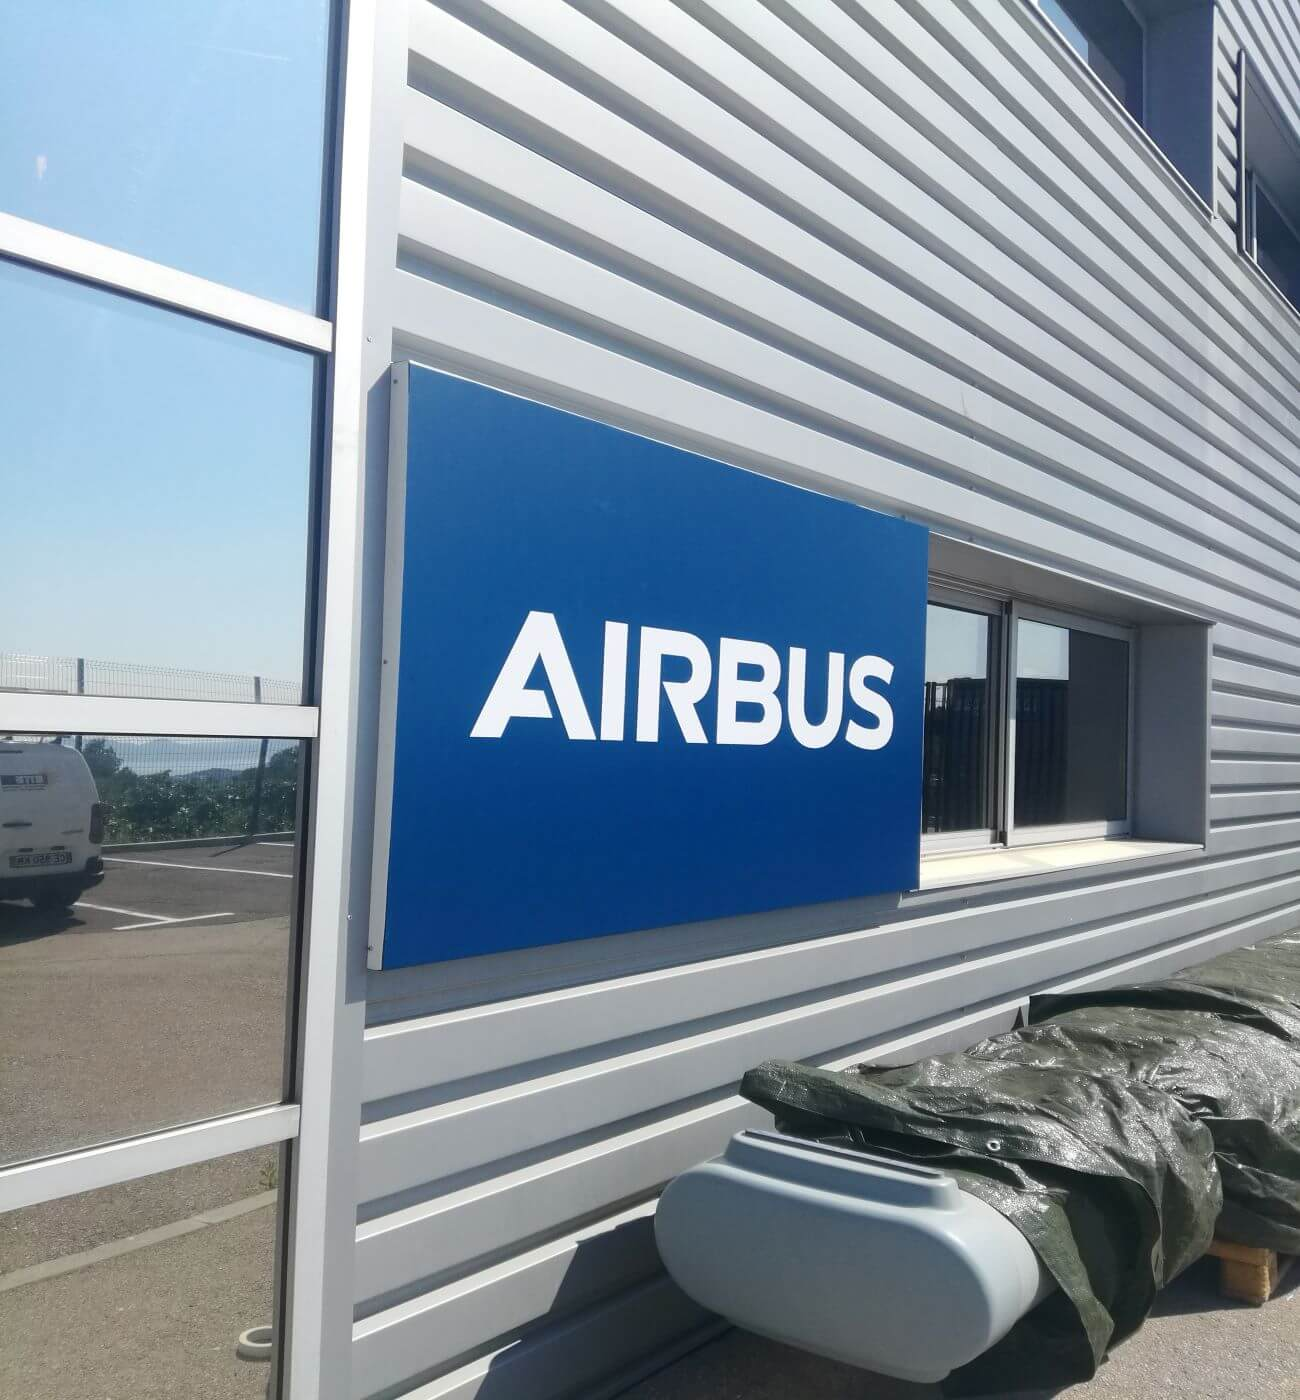 Airbus brand implementation